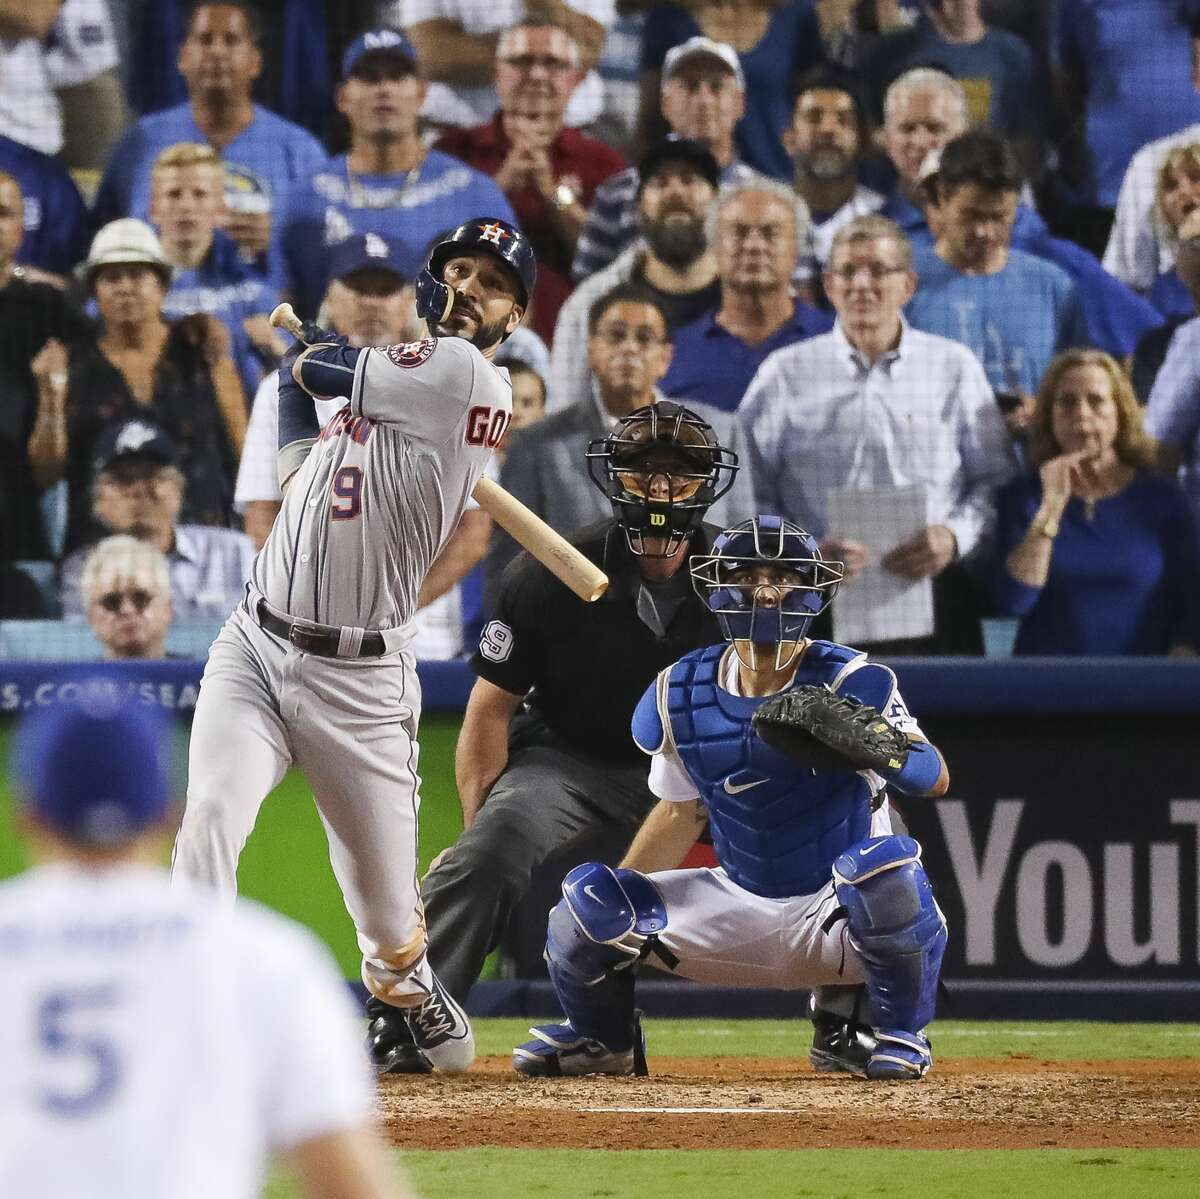 ASTROS WON THE TRADE 12/8/2011 Traded P Marco Duarte to Red Sox for INF Marwin Gonzalez (pictured) The very first trade in Jeff Luhnow's tenure as general manager was a grand slam. Gonzalez is another guy who was integral to the Astros' World Series win and owns the biggest home run in franchise history with his ninth-inning game-tying home run in Game 2 of the World Series. Duarte never made it above Class AA and has spent the past seven seasons pitching in the Mexican League.